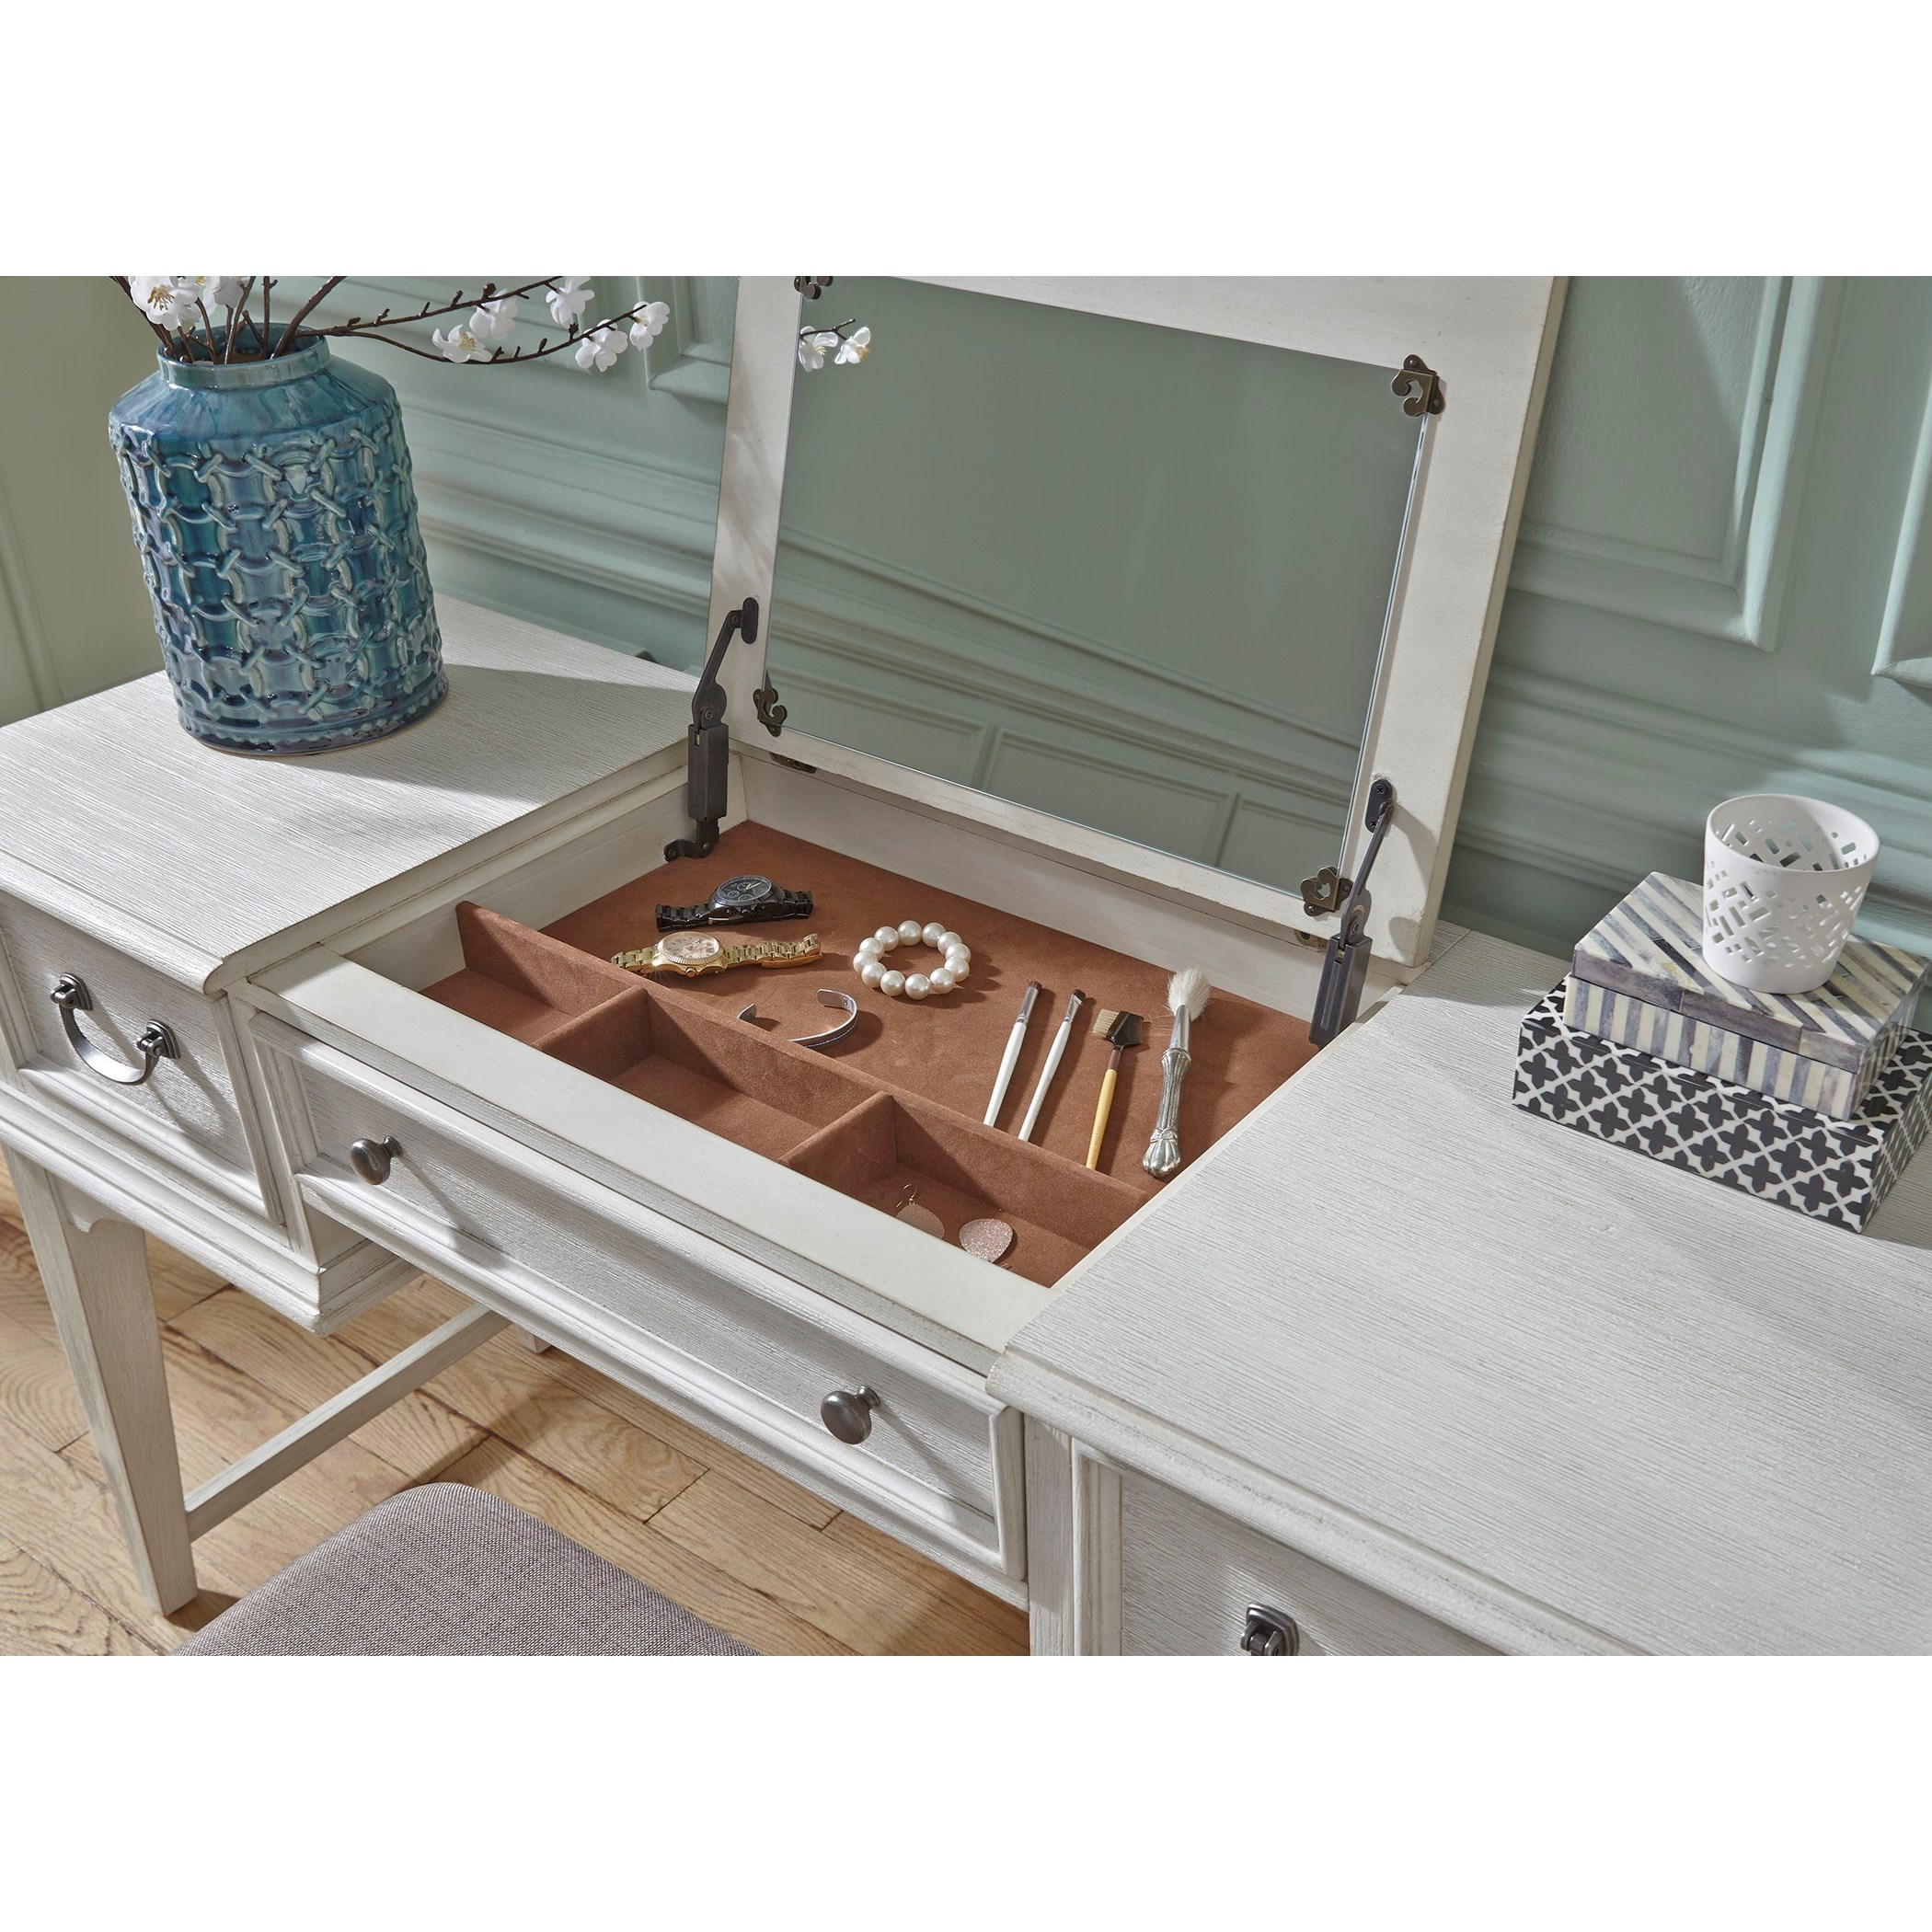 Bayside Bedroom Transitional Vanity Desk with Lift Top Jewelry Storage by  Liberty Furniture at Standard Furniture